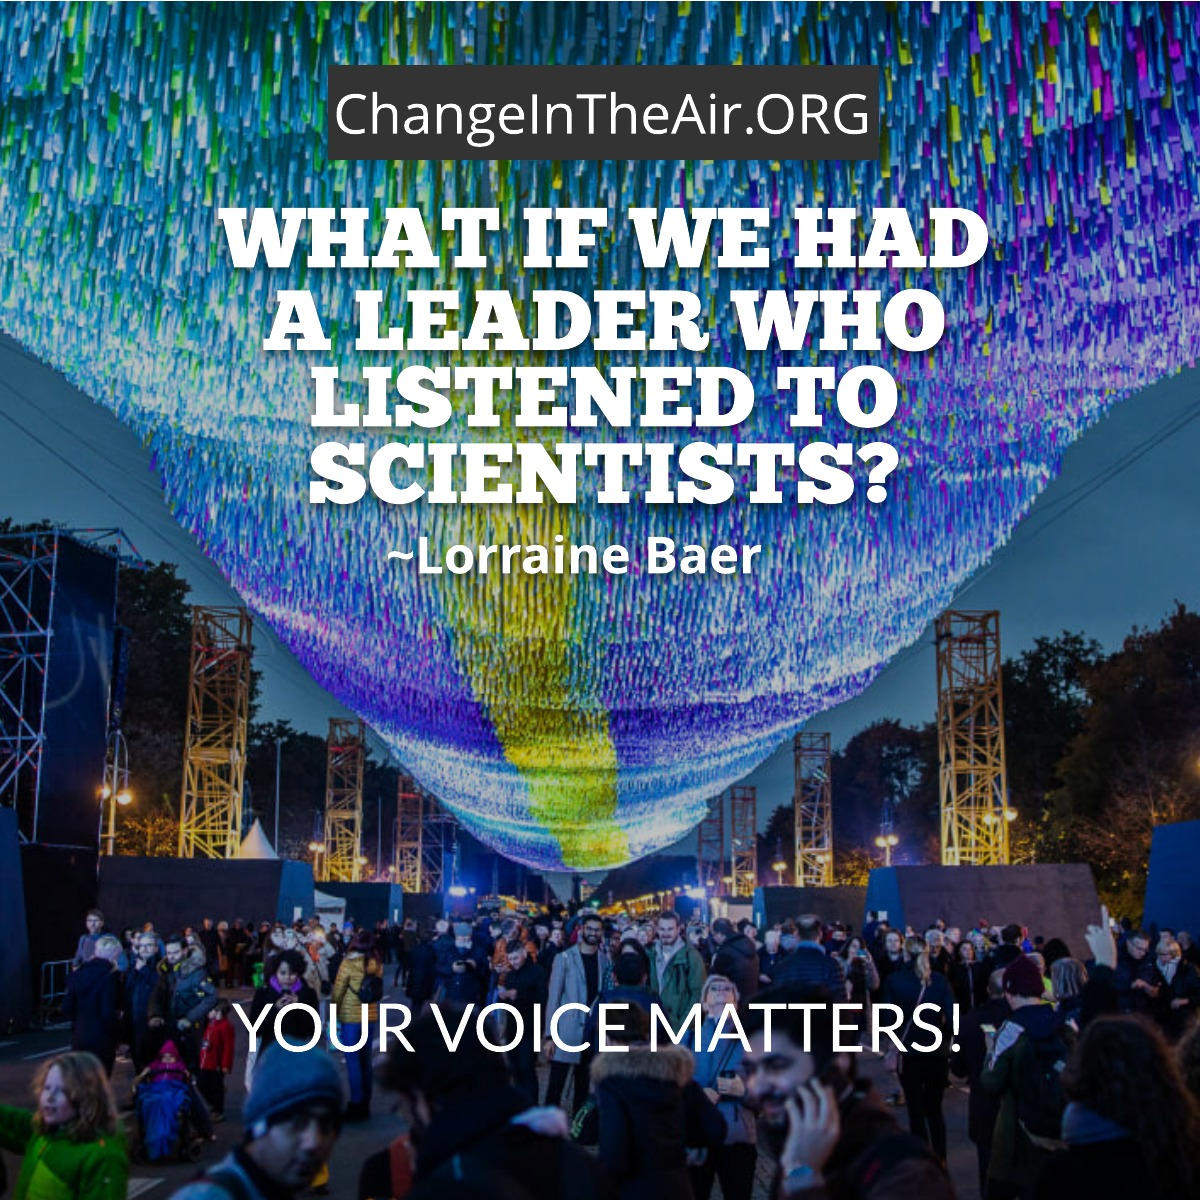 Change in the Air message. What if we had a leader who listened to scientists?